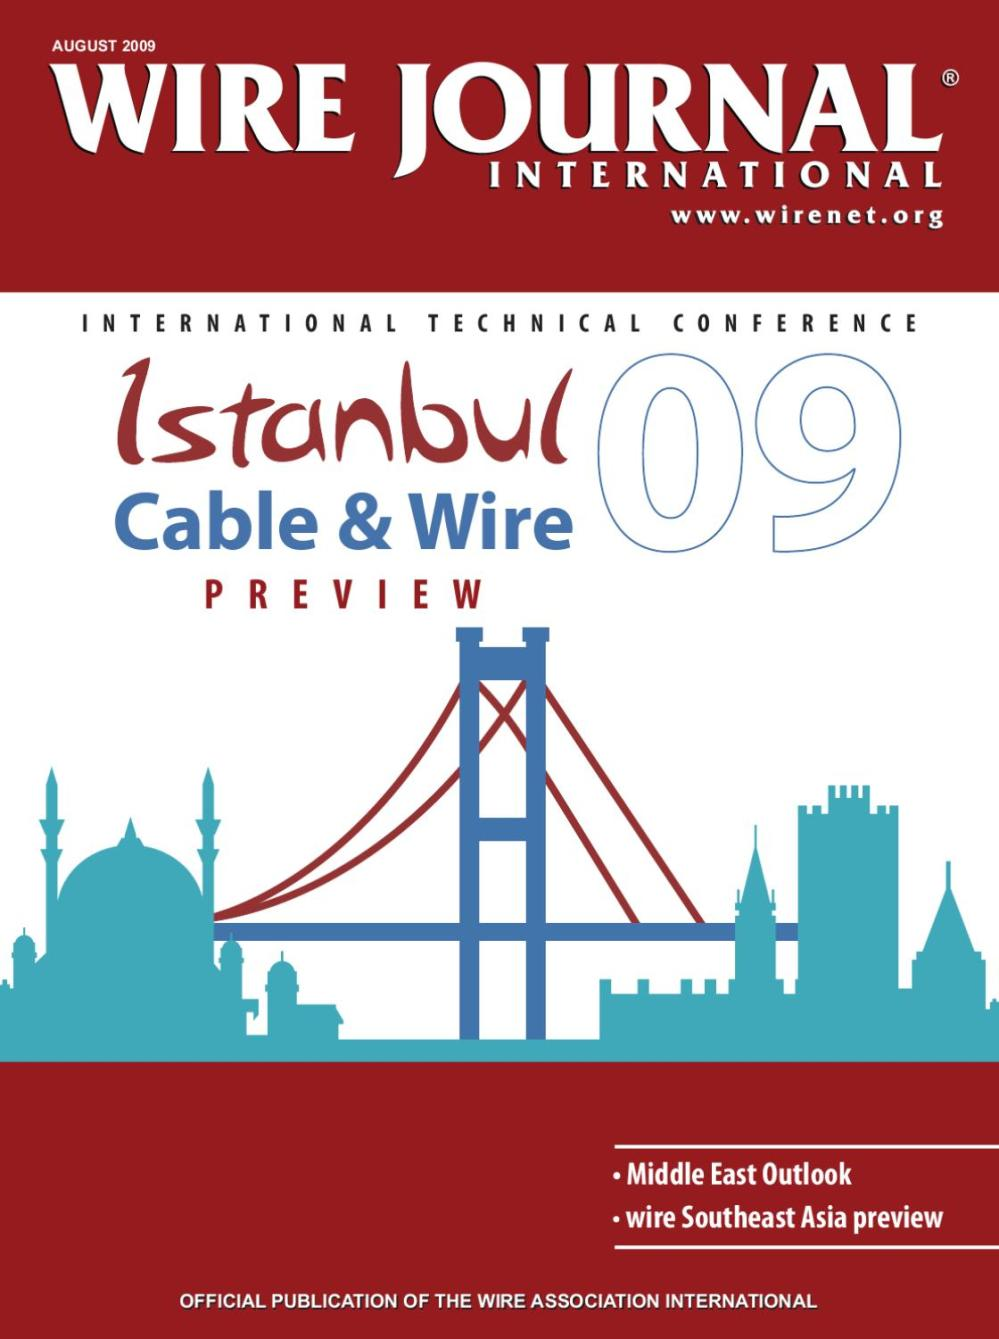 medium resolution of istanbul cable wire 2009 preview by wire journal international inc issuu